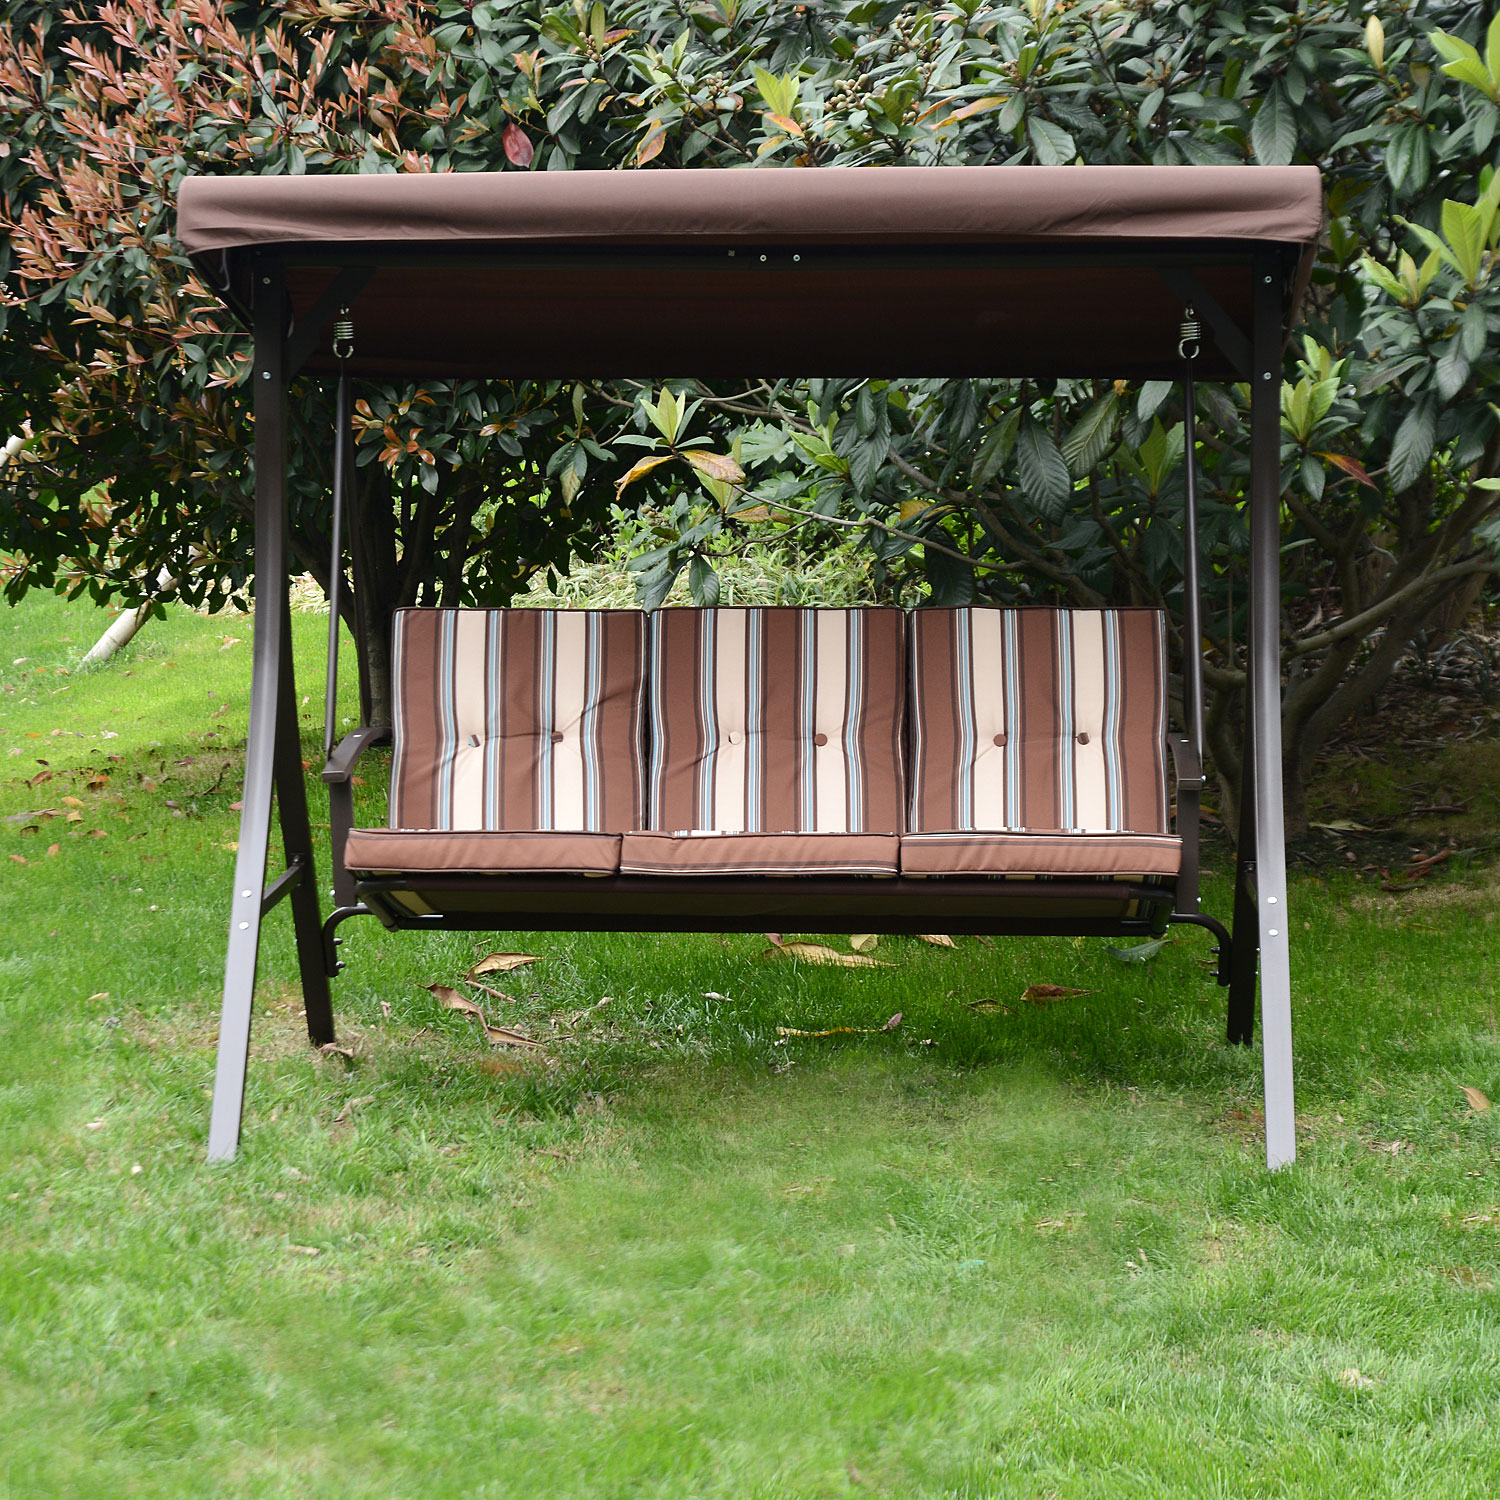 Swing Chair Canopy Outdoor 3 person Lounge Patio Backyard Seat Beach Furniture